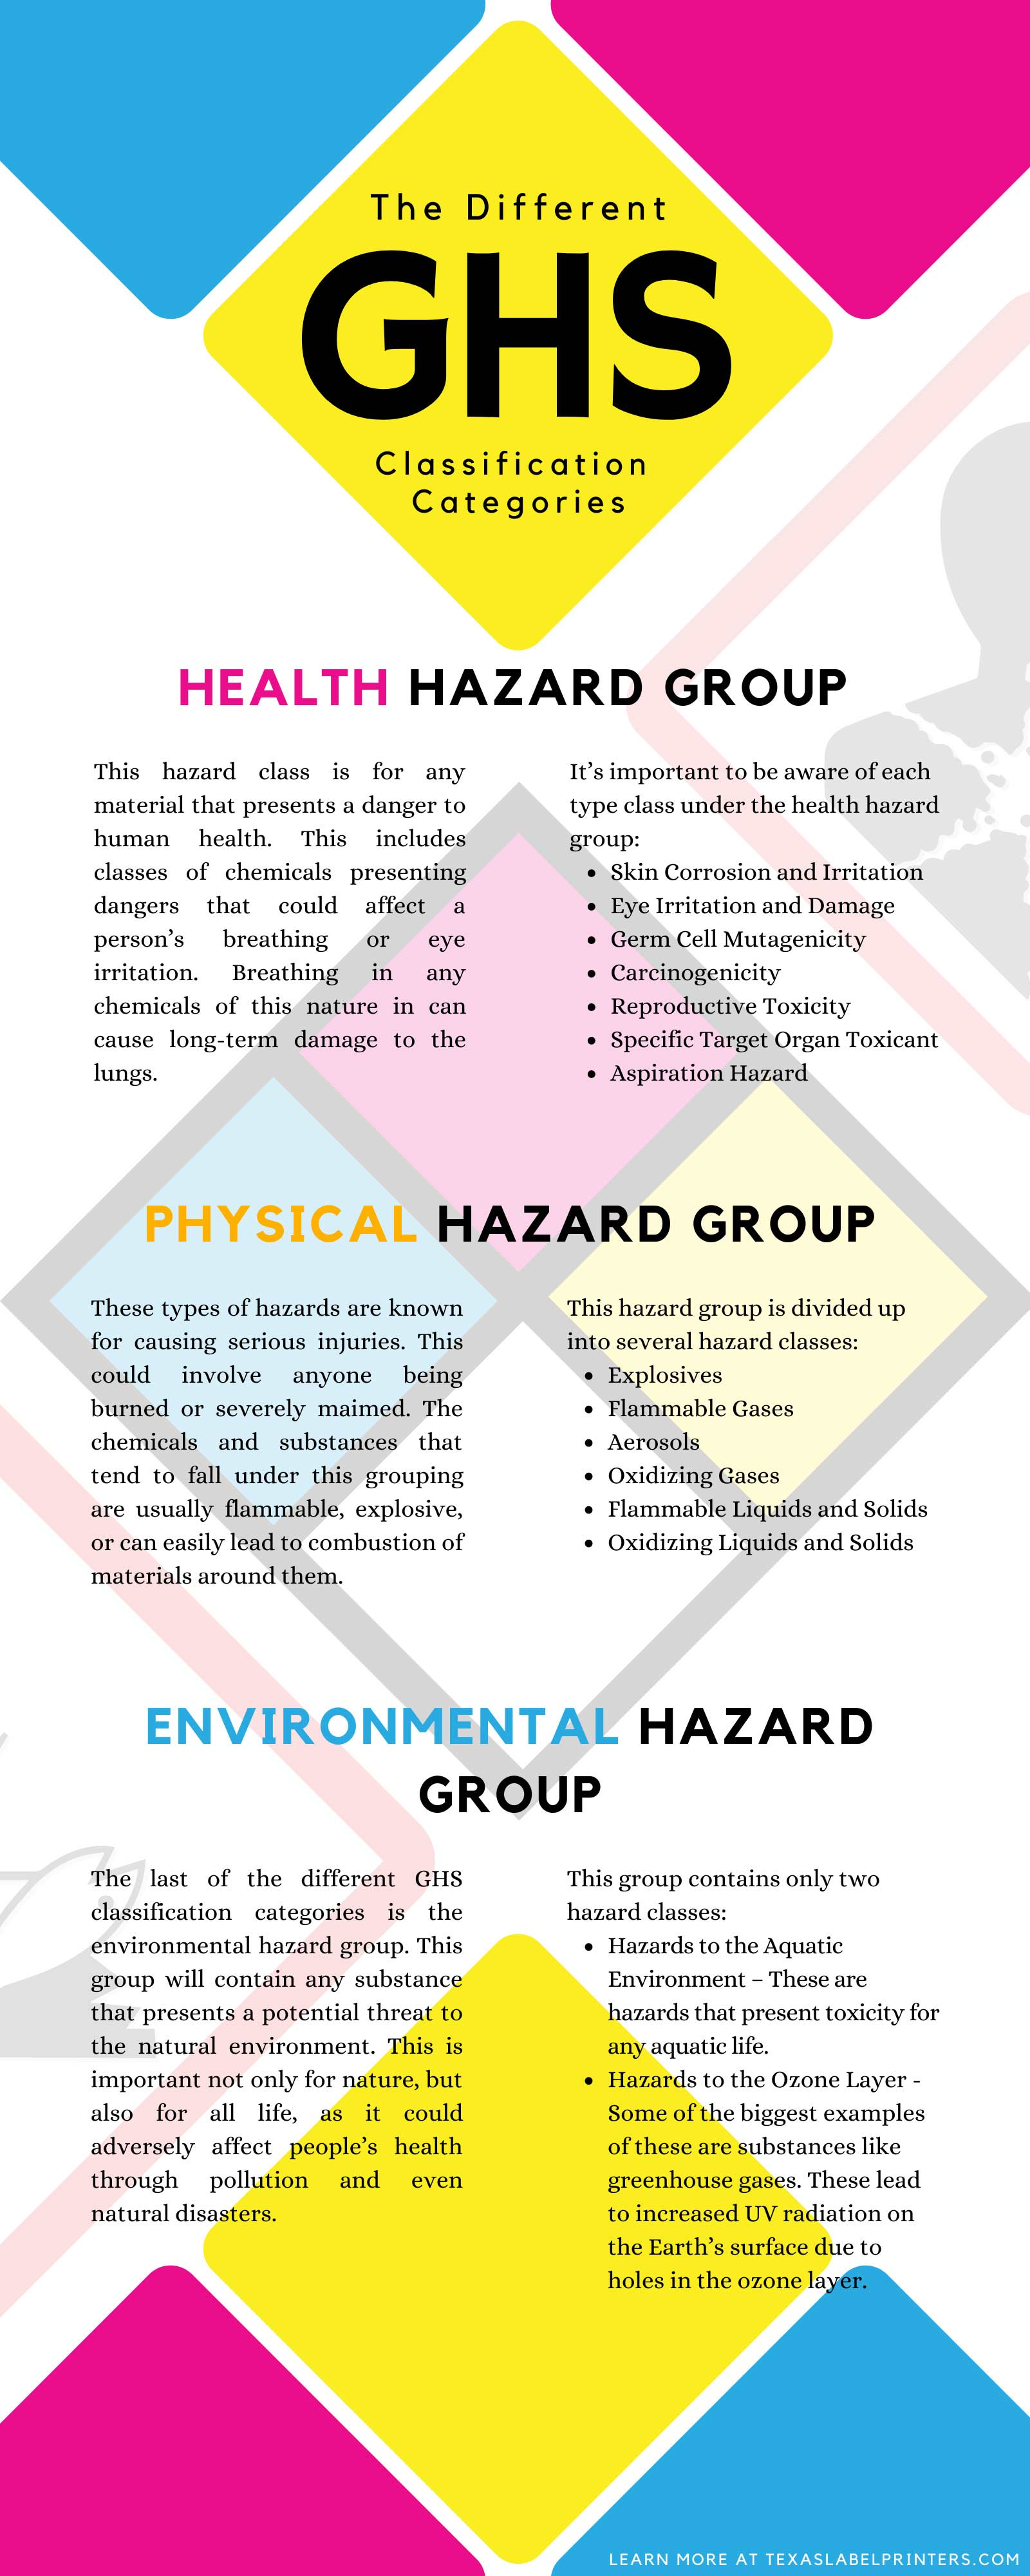 The Different GHS Classification Categories Infographic